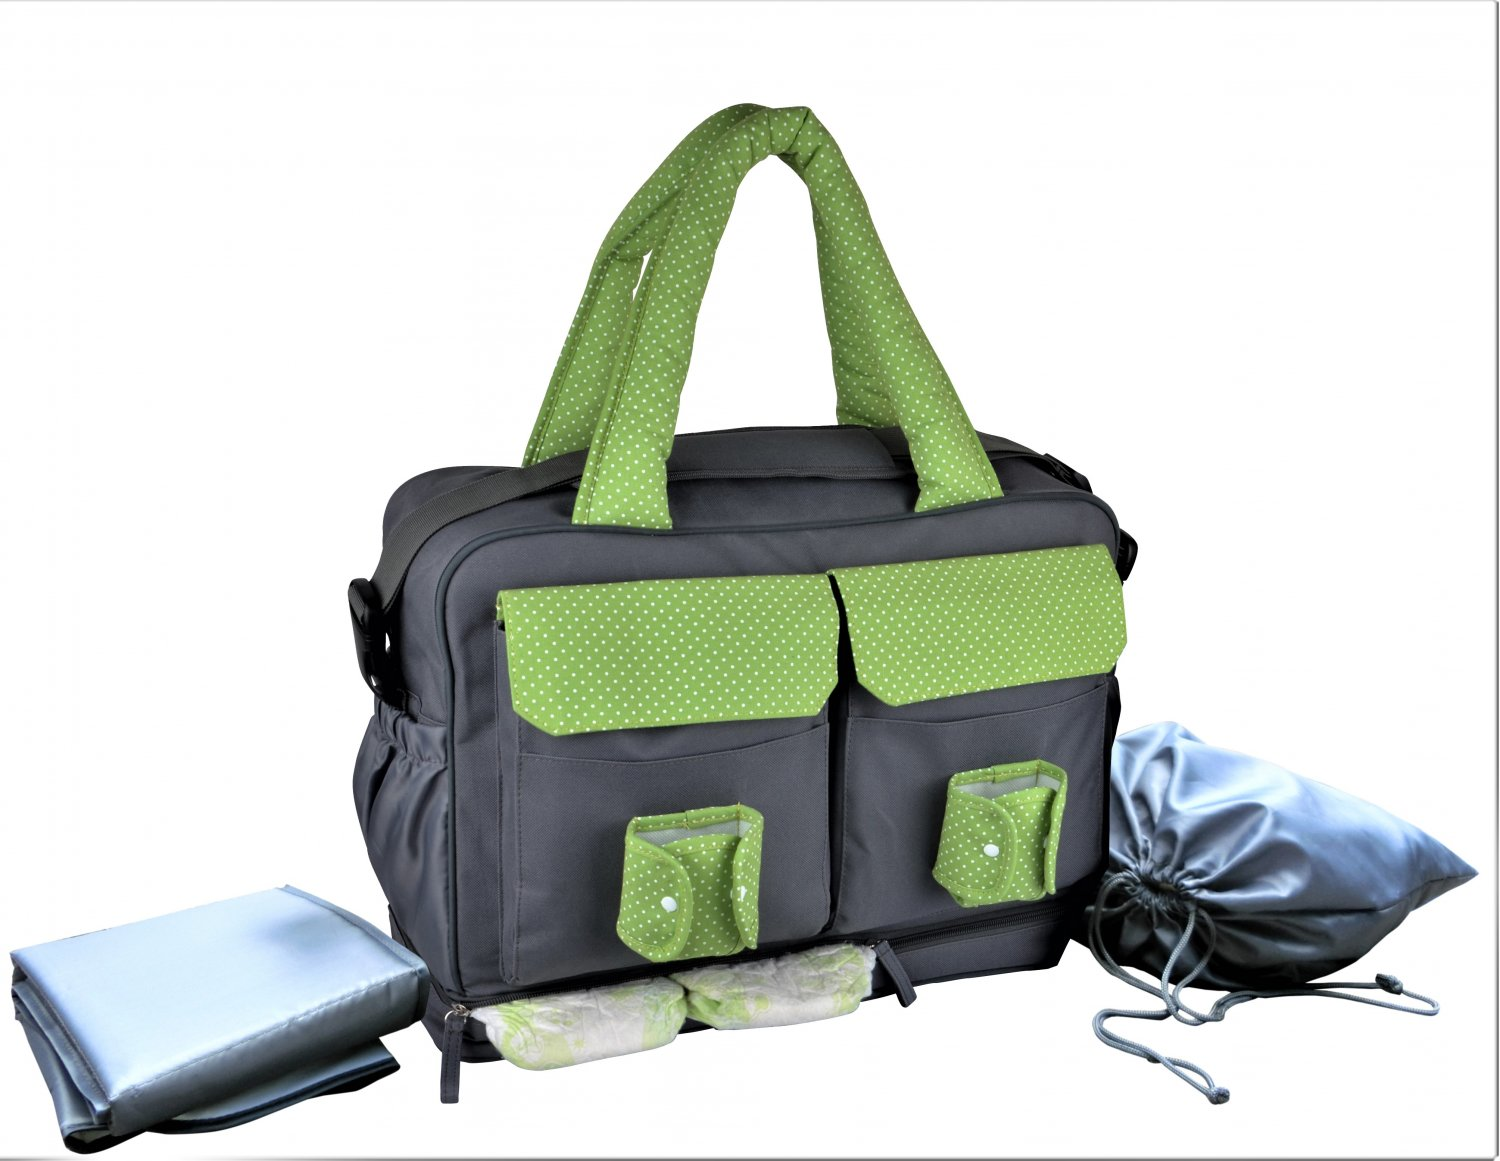 Convertible 3-in-1 Large Twins Diaper Bag Converts from a tote to a messenger or backpack